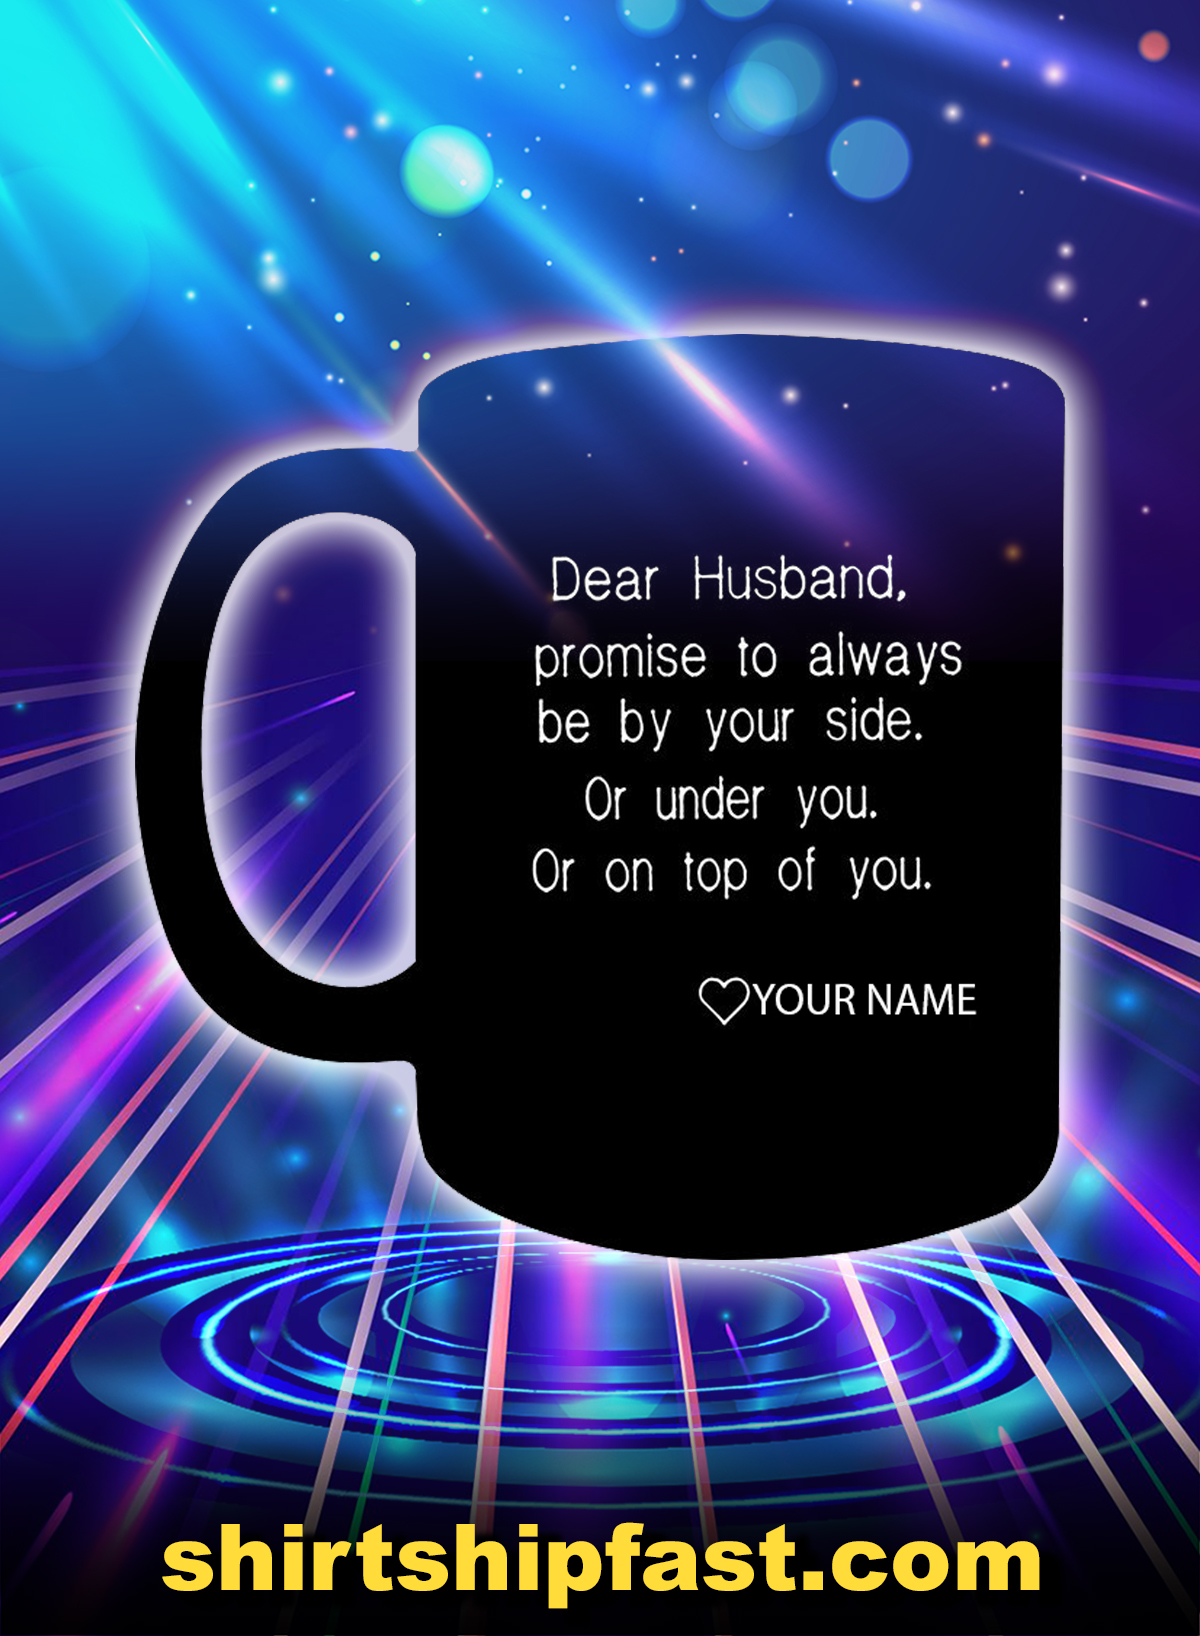 Dear husband I promise to always be by your side personalized custom name mug - Picture 1